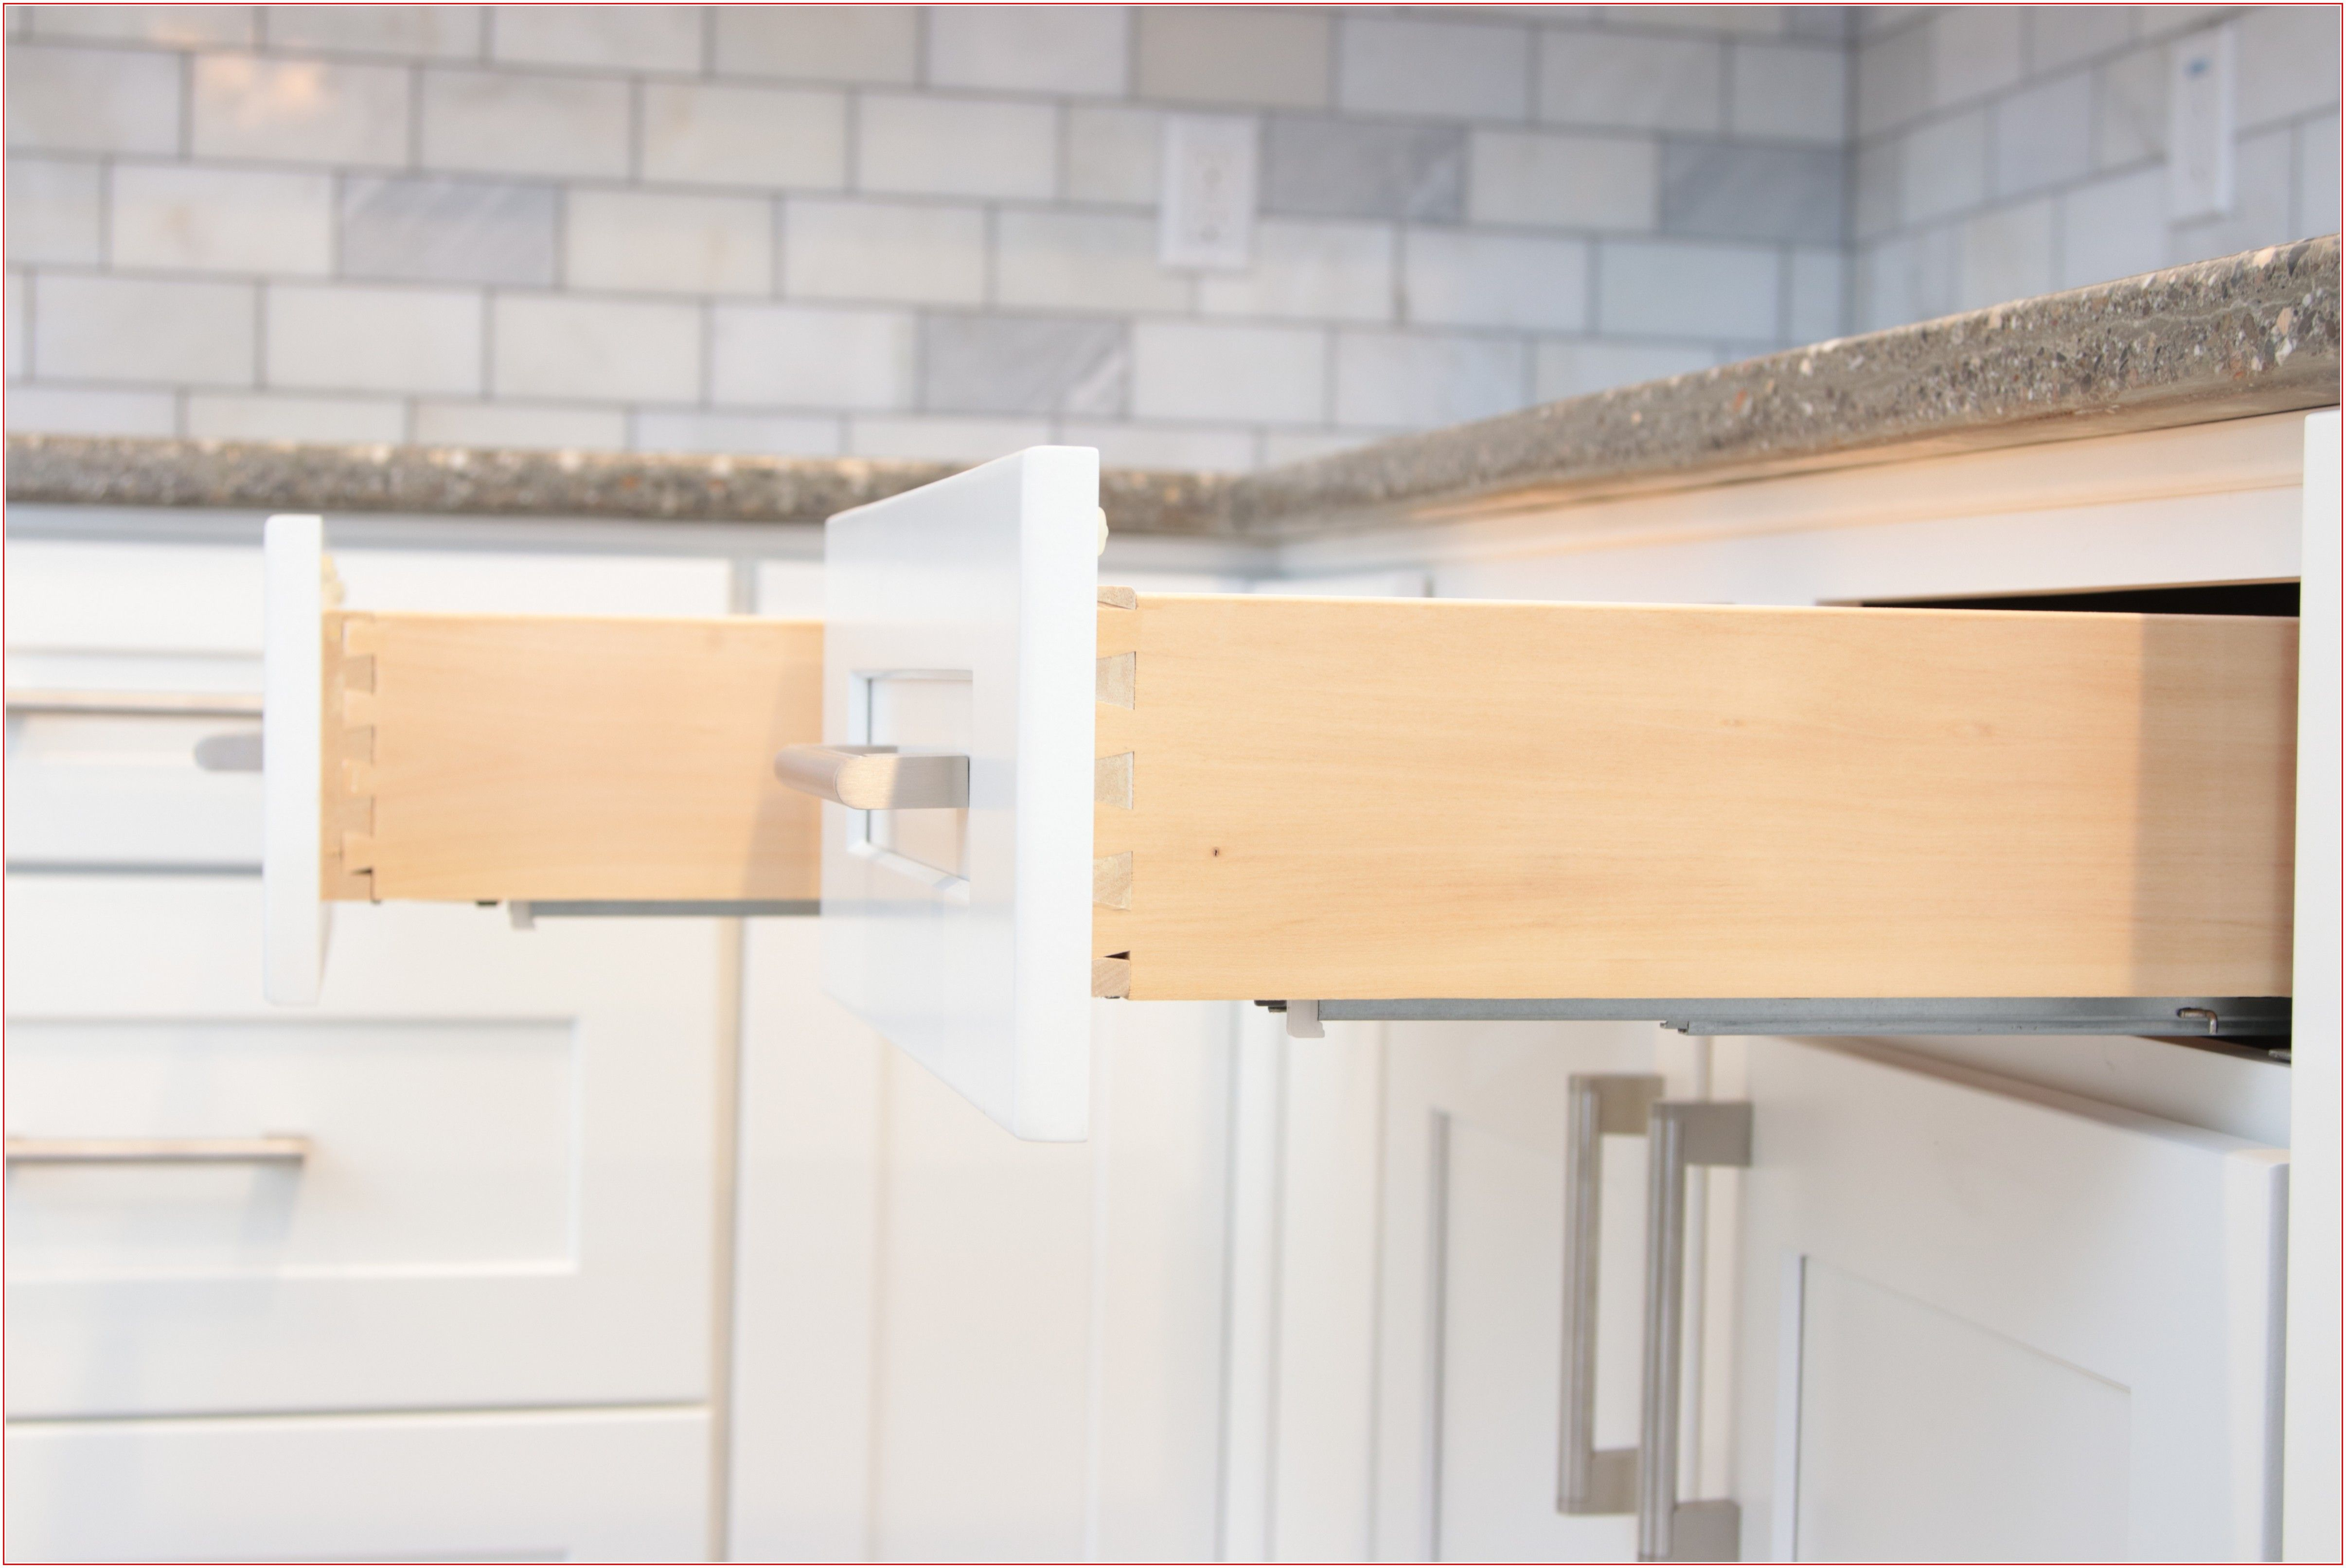 affordable wood cabinets   Wood cabinets, Wood kitchen ...